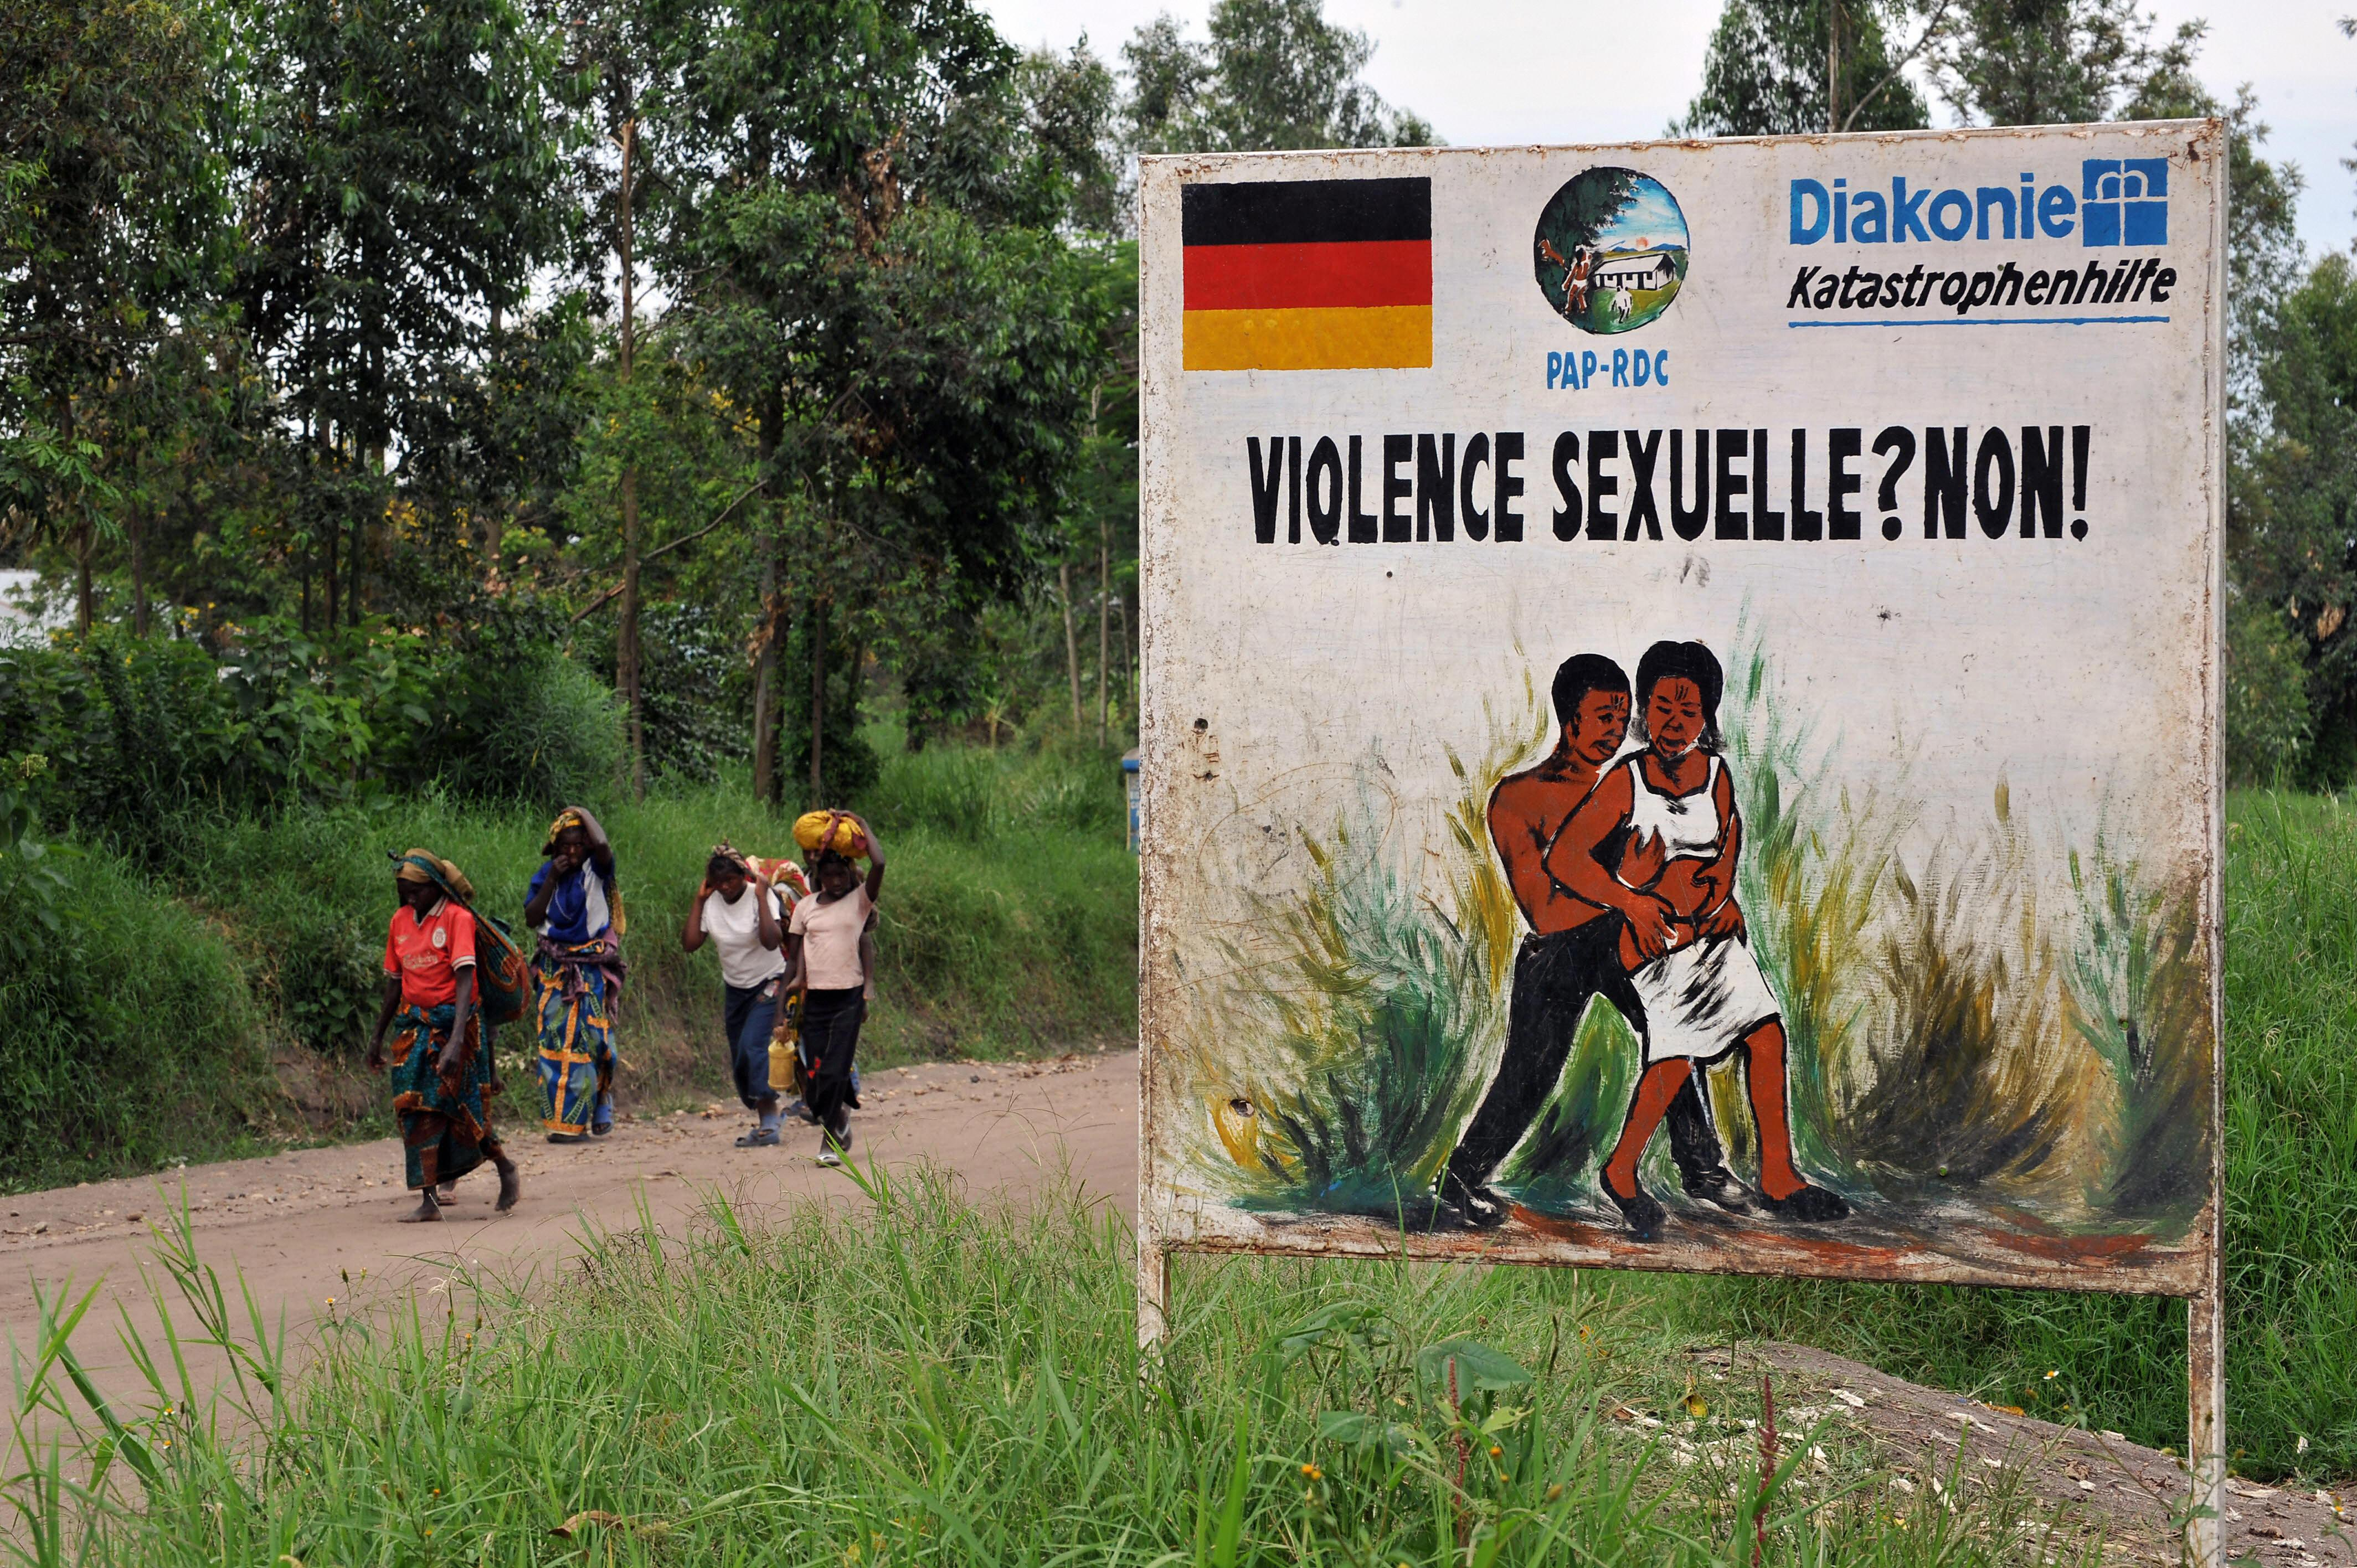 11 Congolese Fighters Have Been Jailed for Life For Raping Dozens of Children